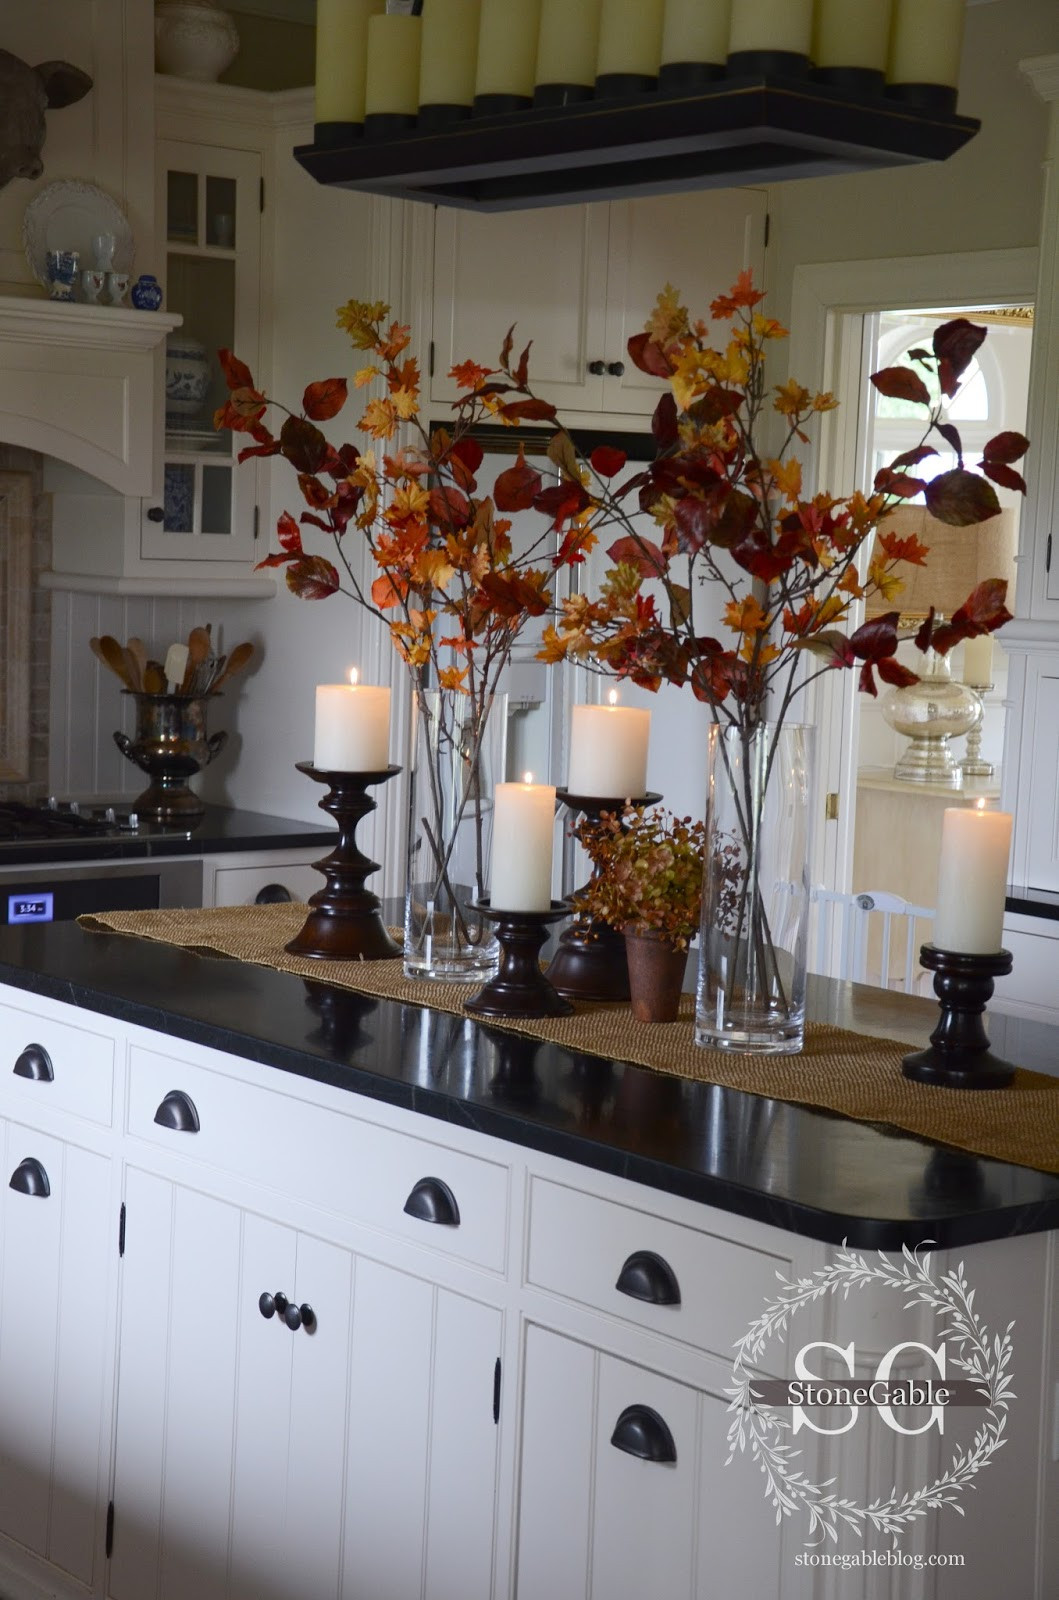 Best ideas about Kitchen Decorating Accessories . Save or Pin ALL ABOUT THE DETAILS KITCHEN HOME TOUR StoneGable Now.